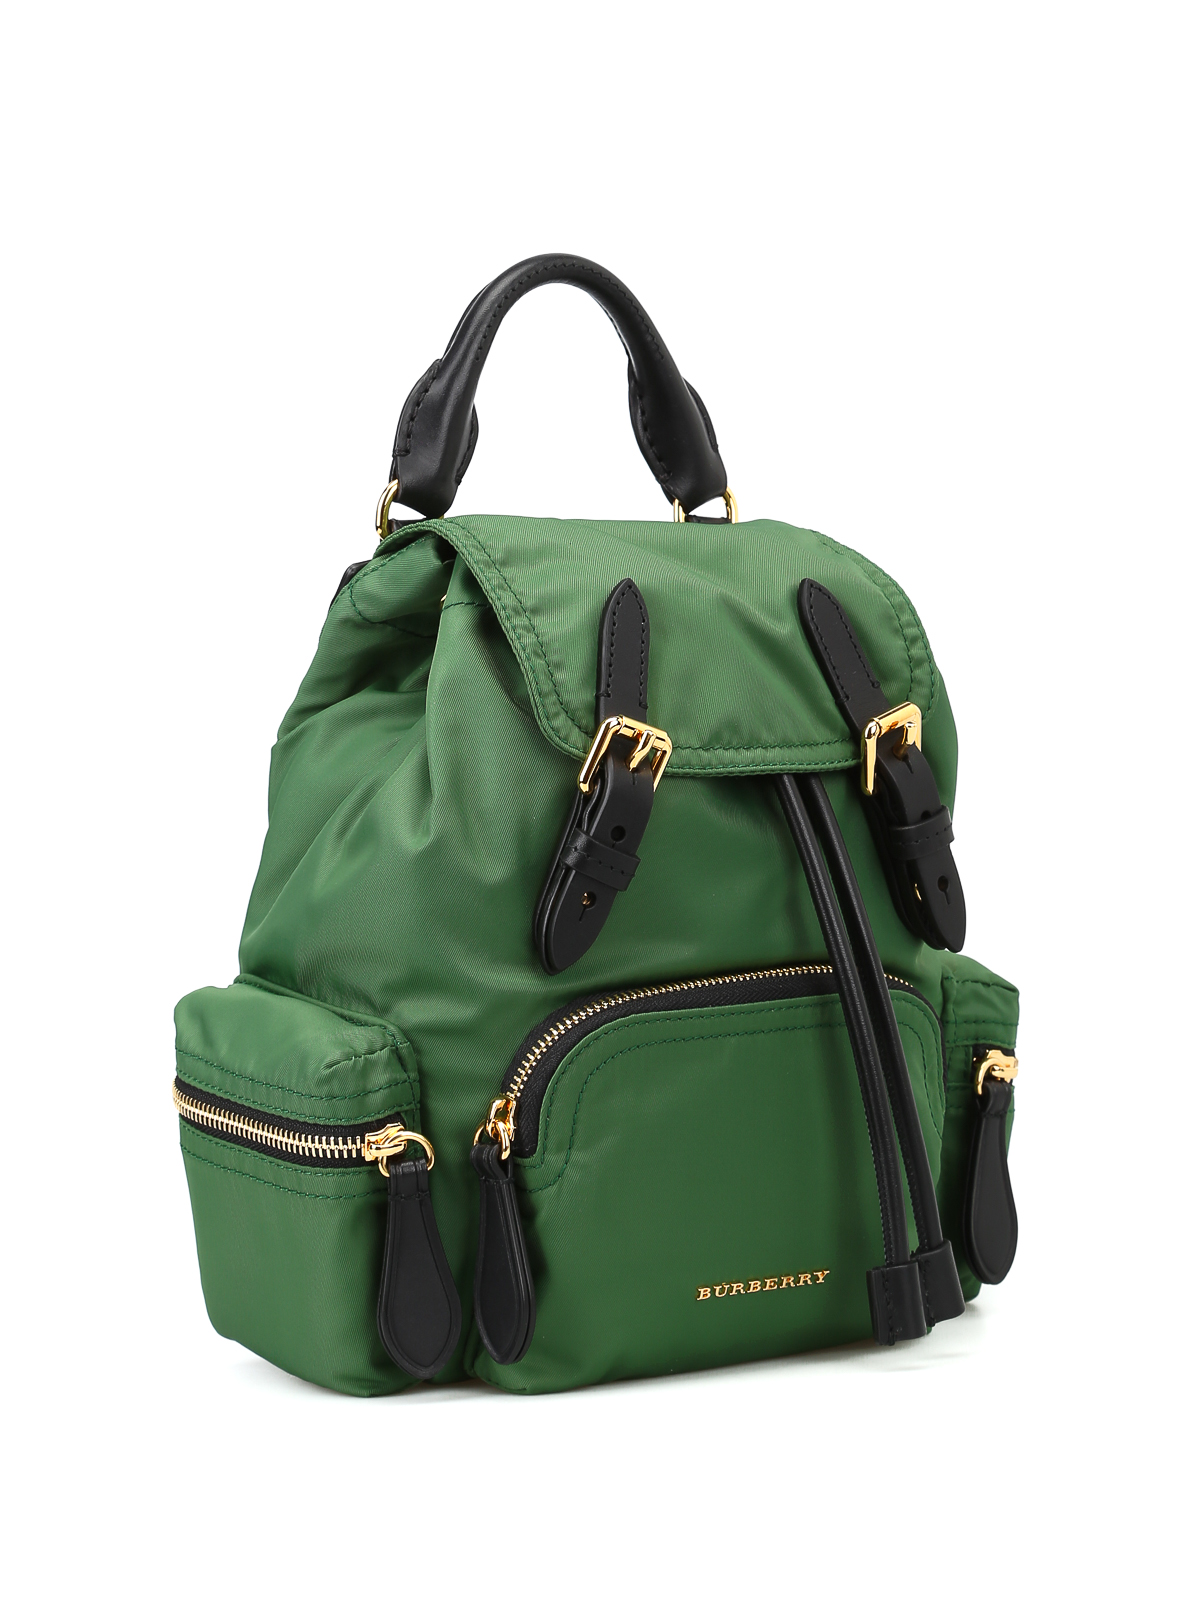 Burberry - The Rucksack green nylon small backpack - backpacks - 4075971 69a5c1f27124d